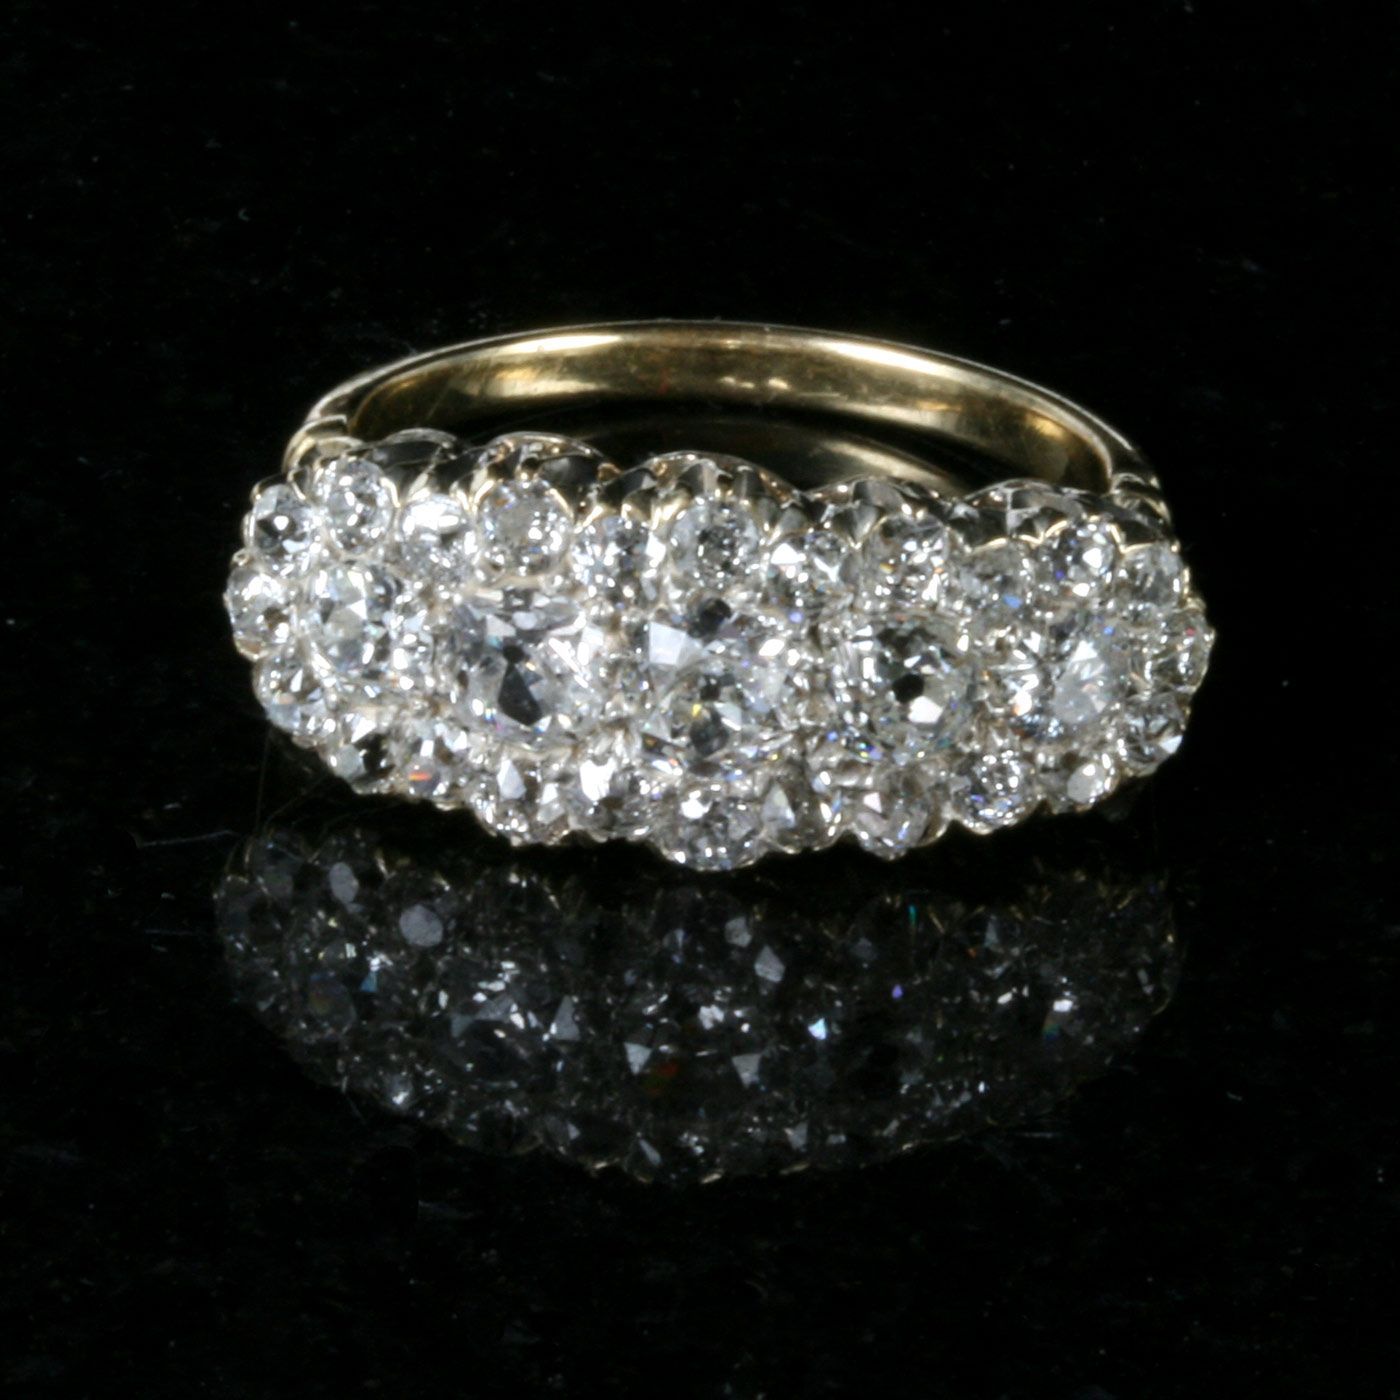 Sell Your High Jewellery Diamond Rings Online Top Offers and Free